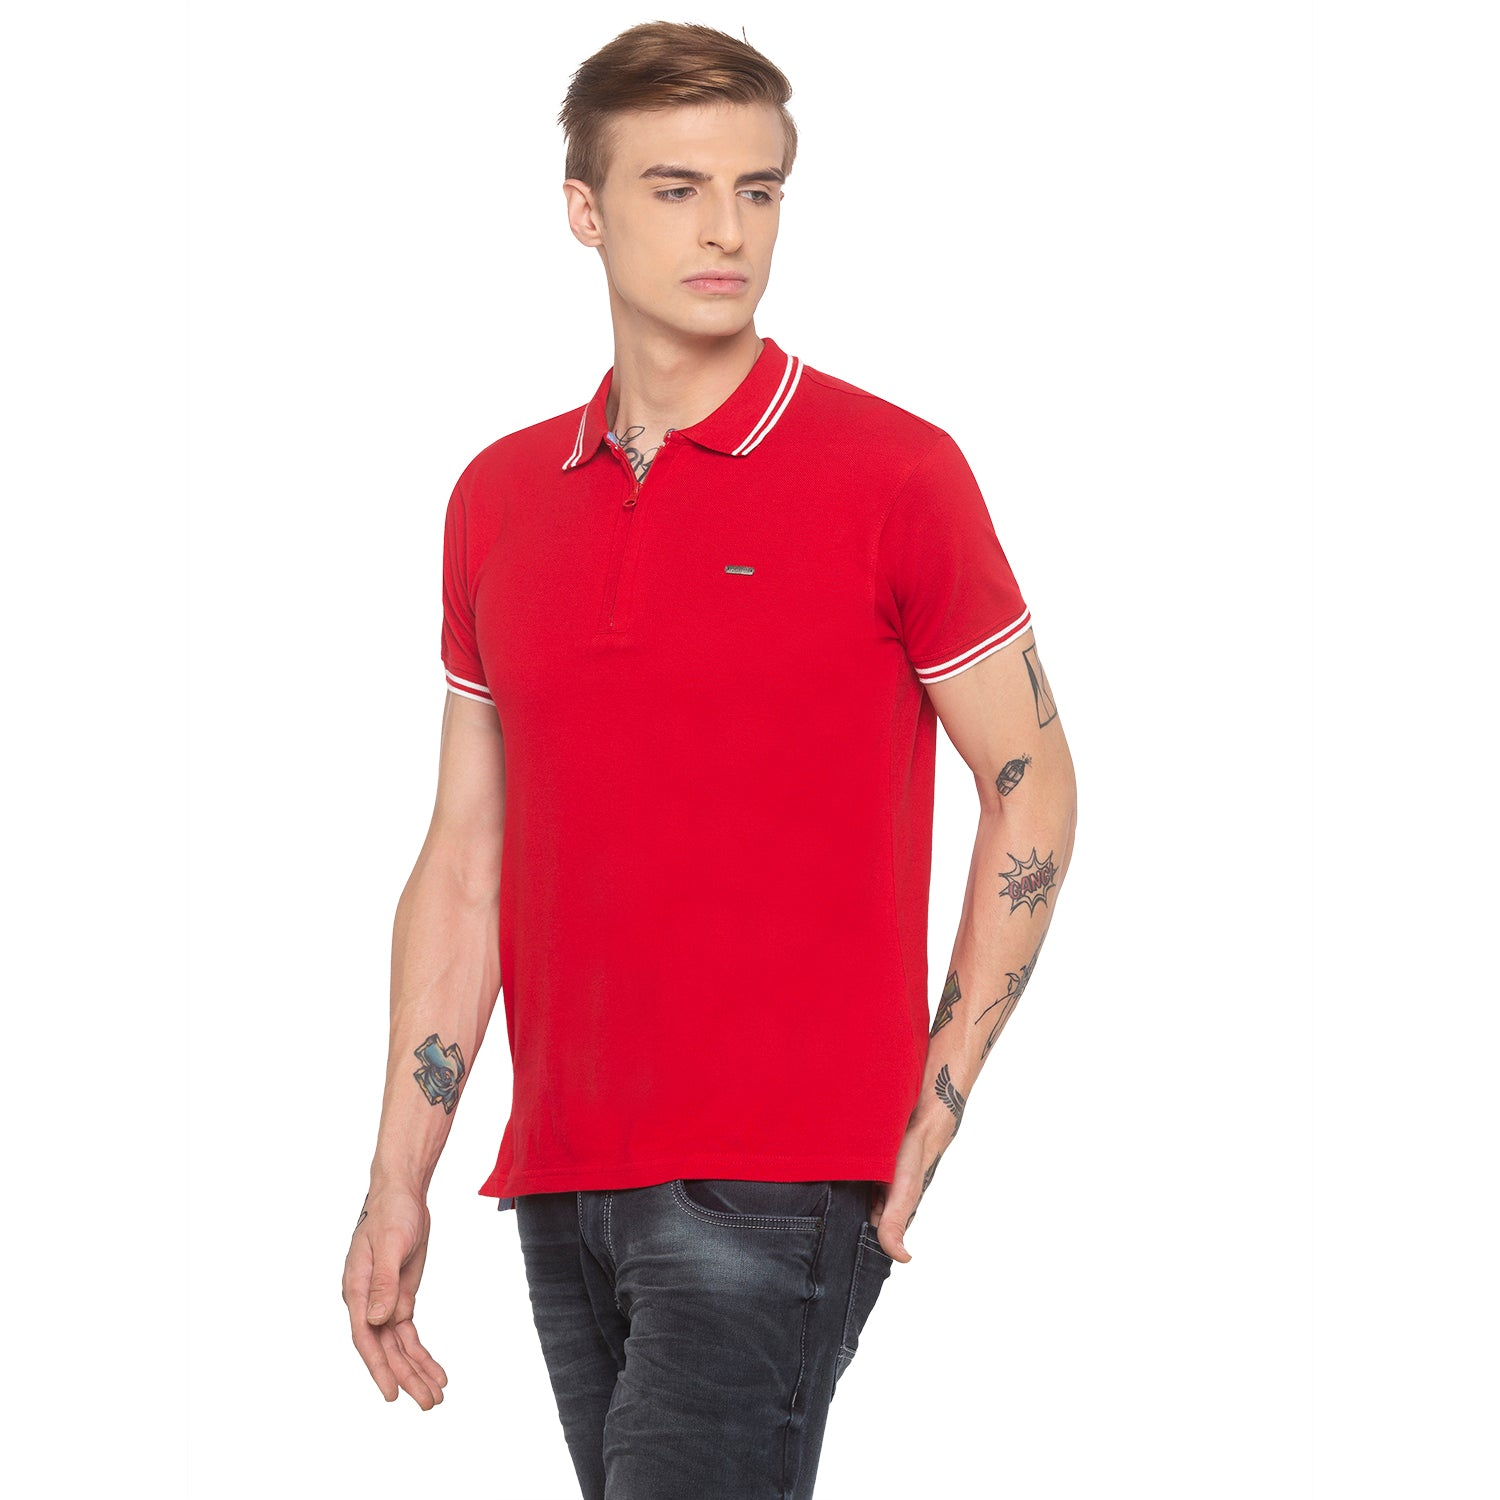 Zipper Polo Neck Solid Red T-shirt-2